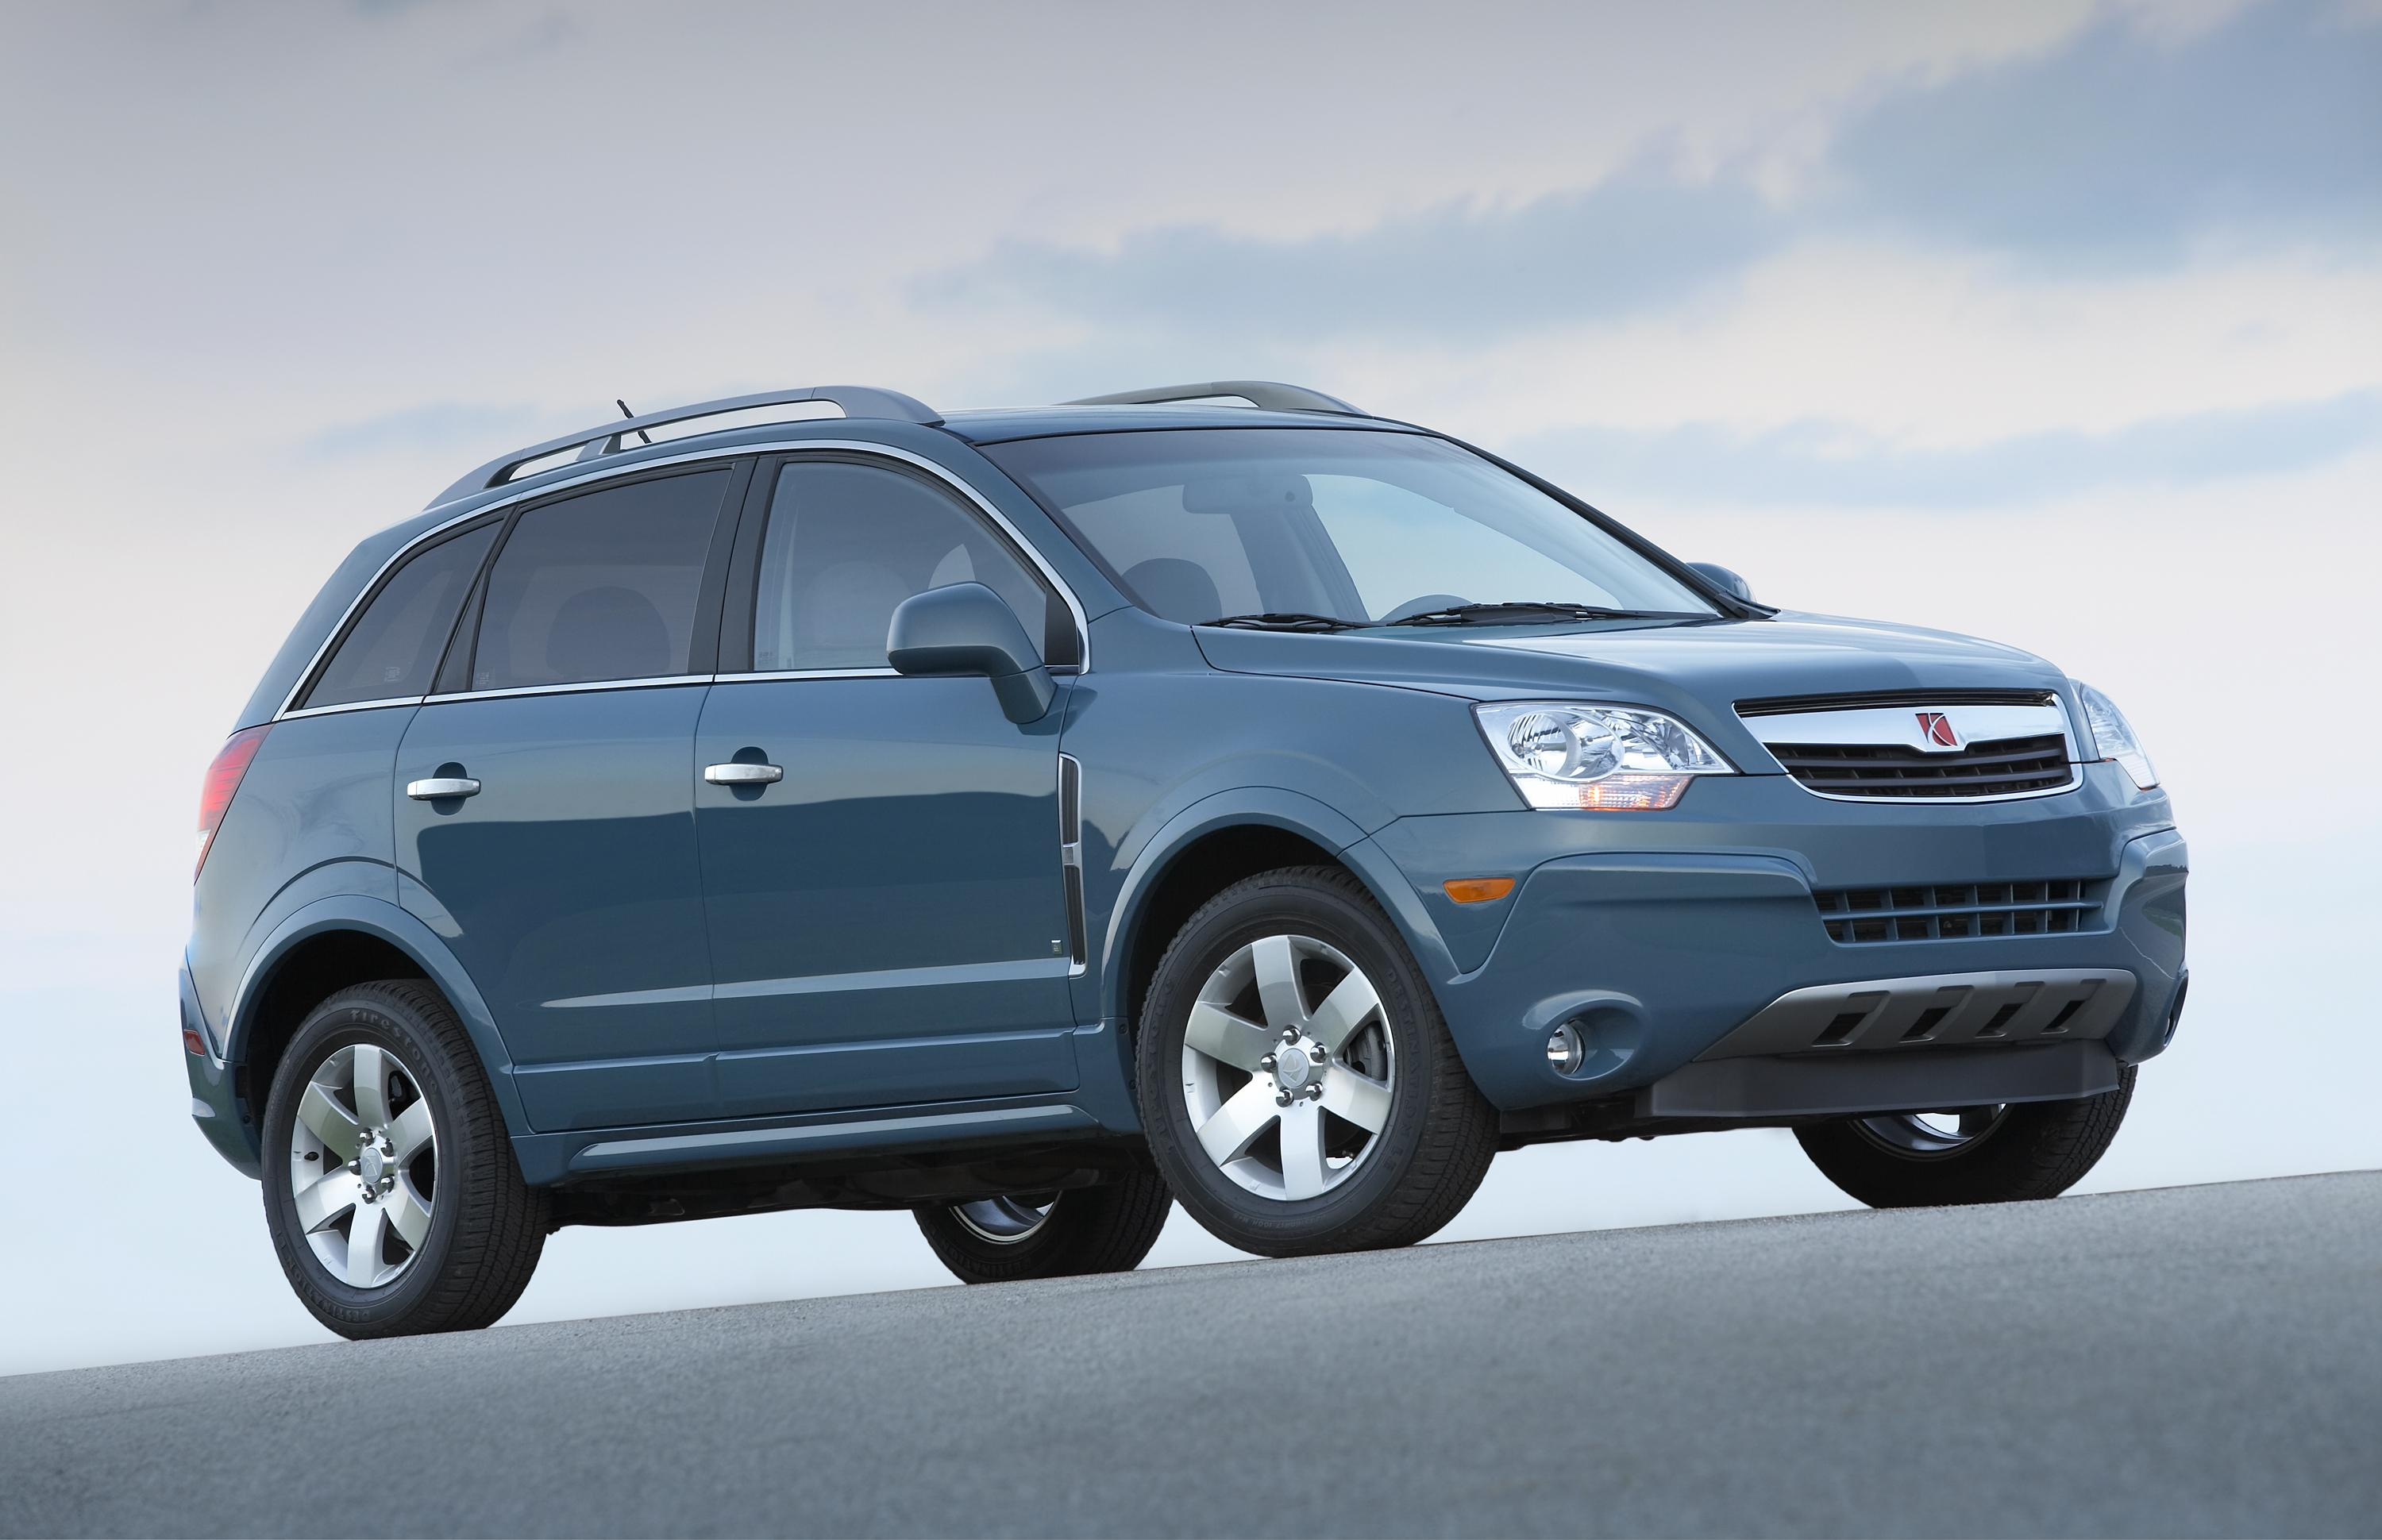 Saturn Vue Reviews Specs Prices Photos And Videos Top Speed Transmission Install